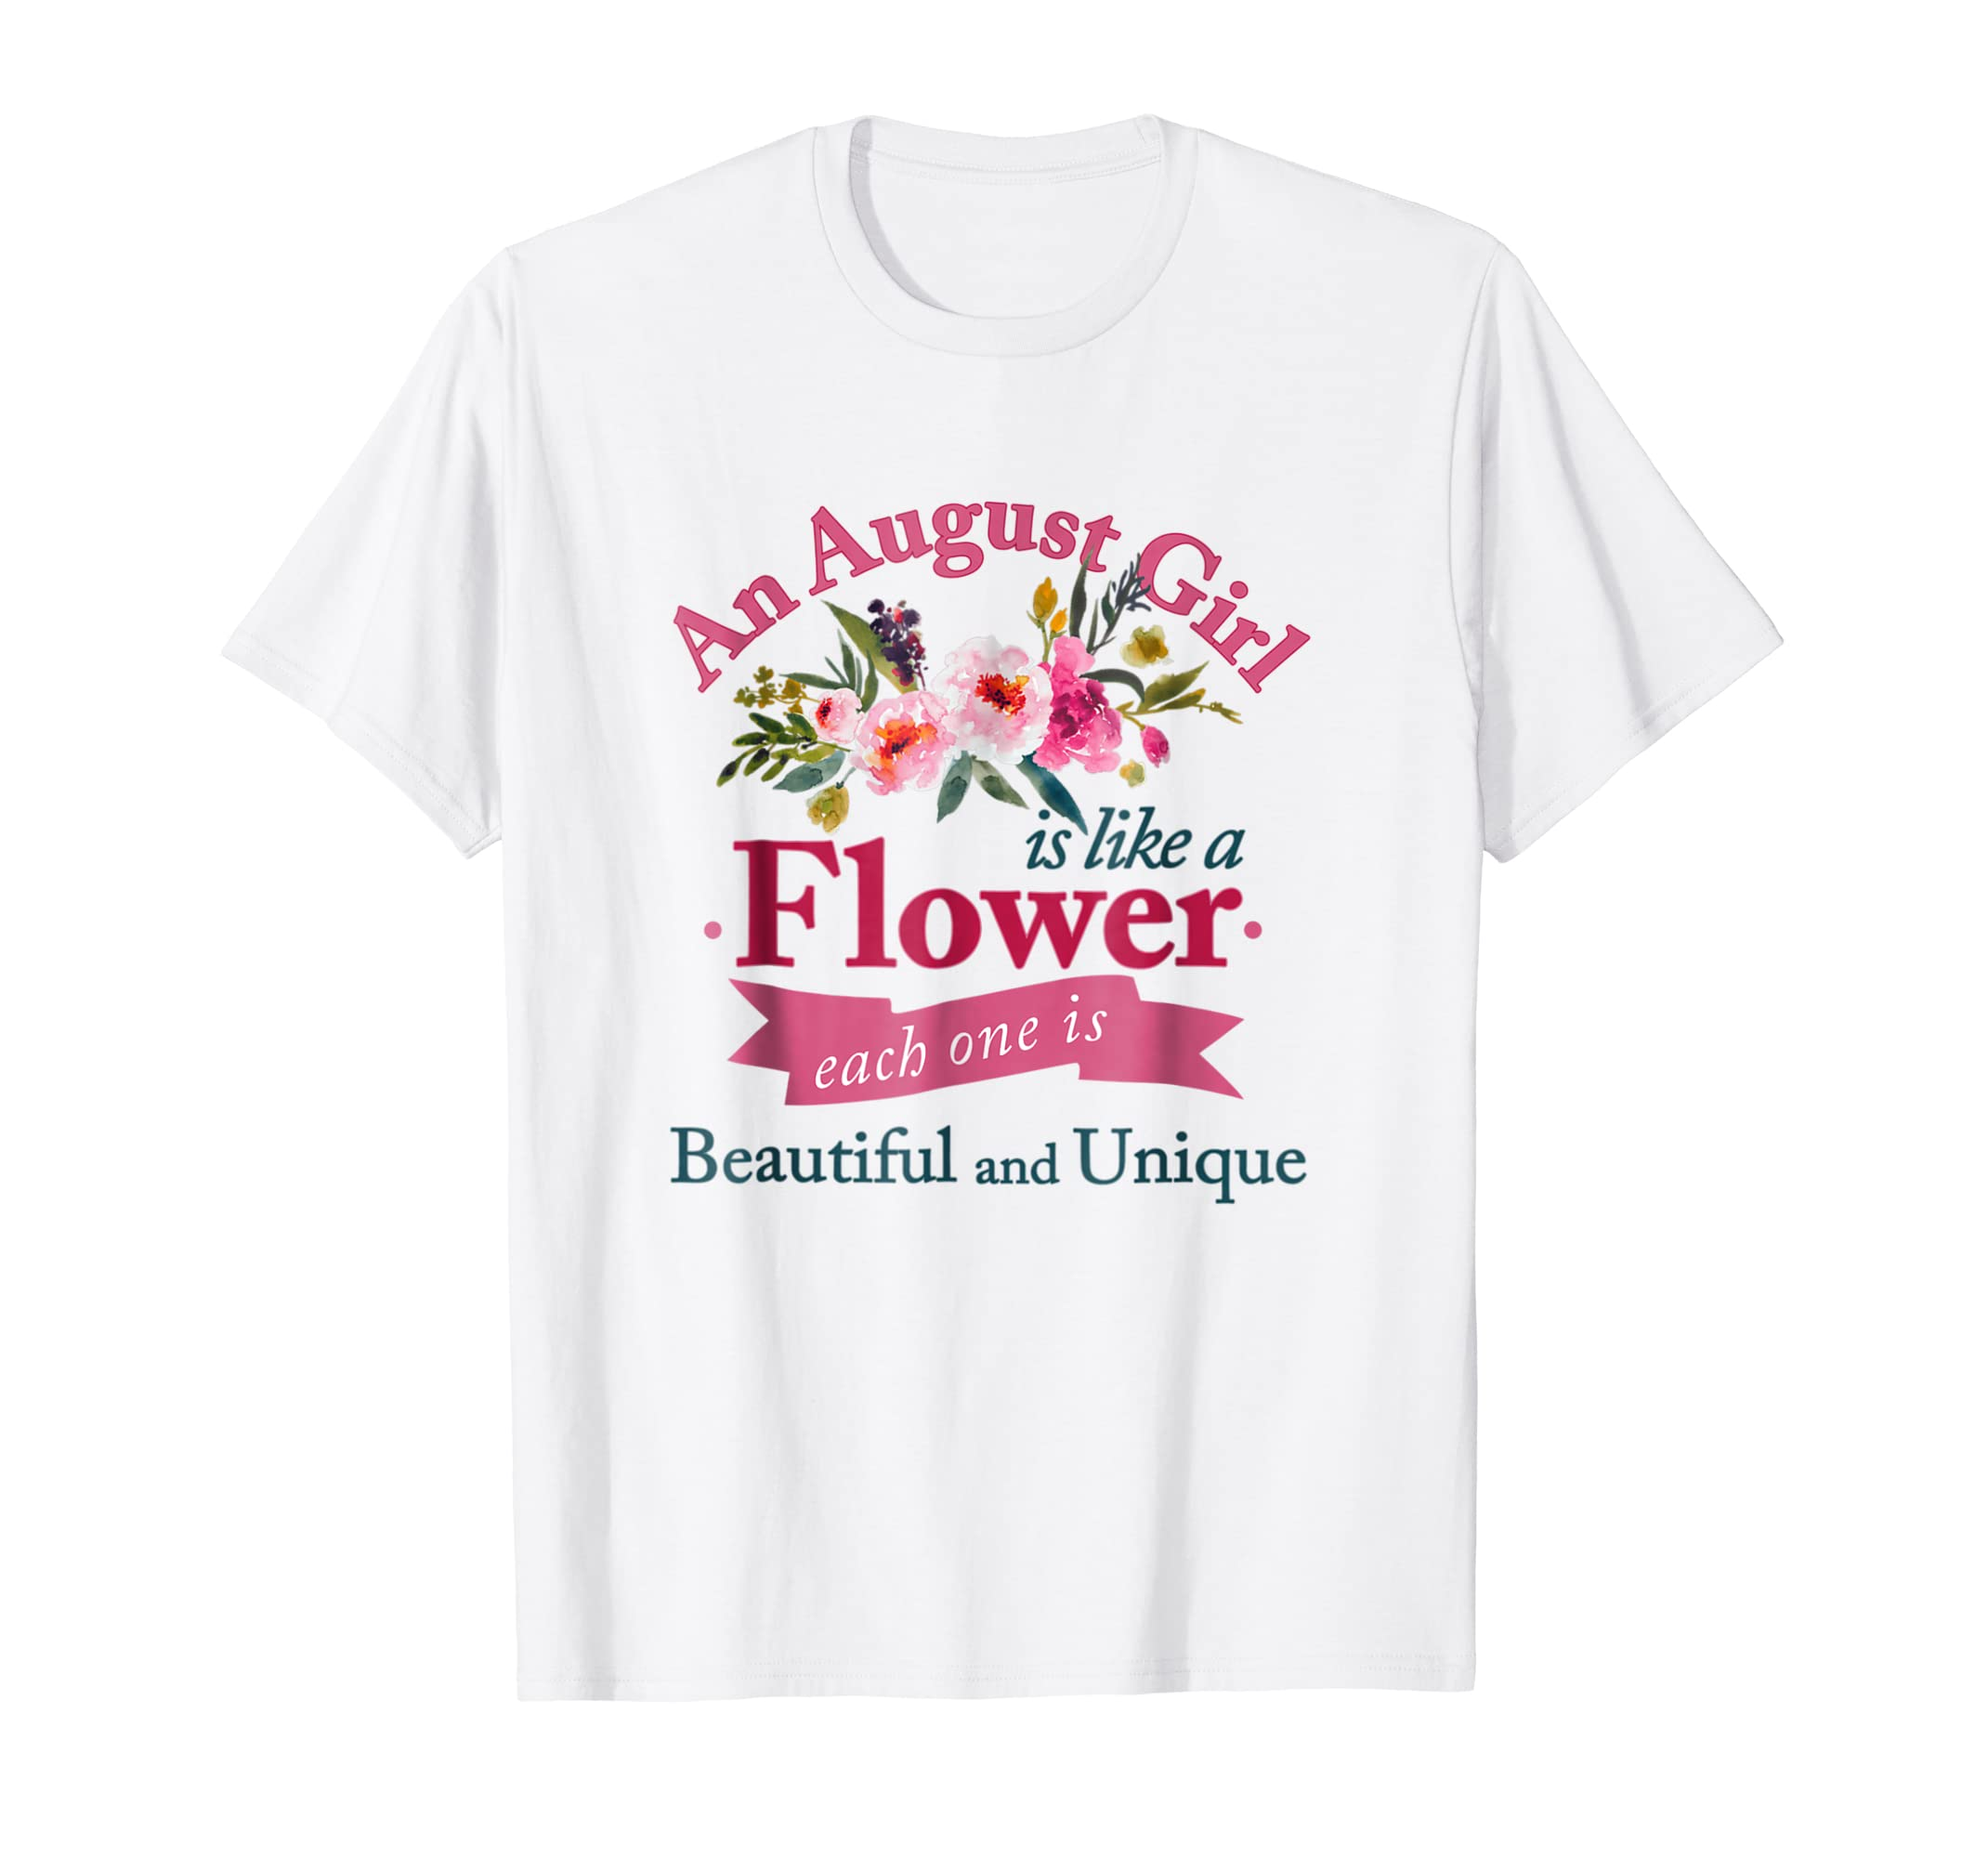 An August Girl Is Like A Flower T Shirt August Girl Gift Multimv